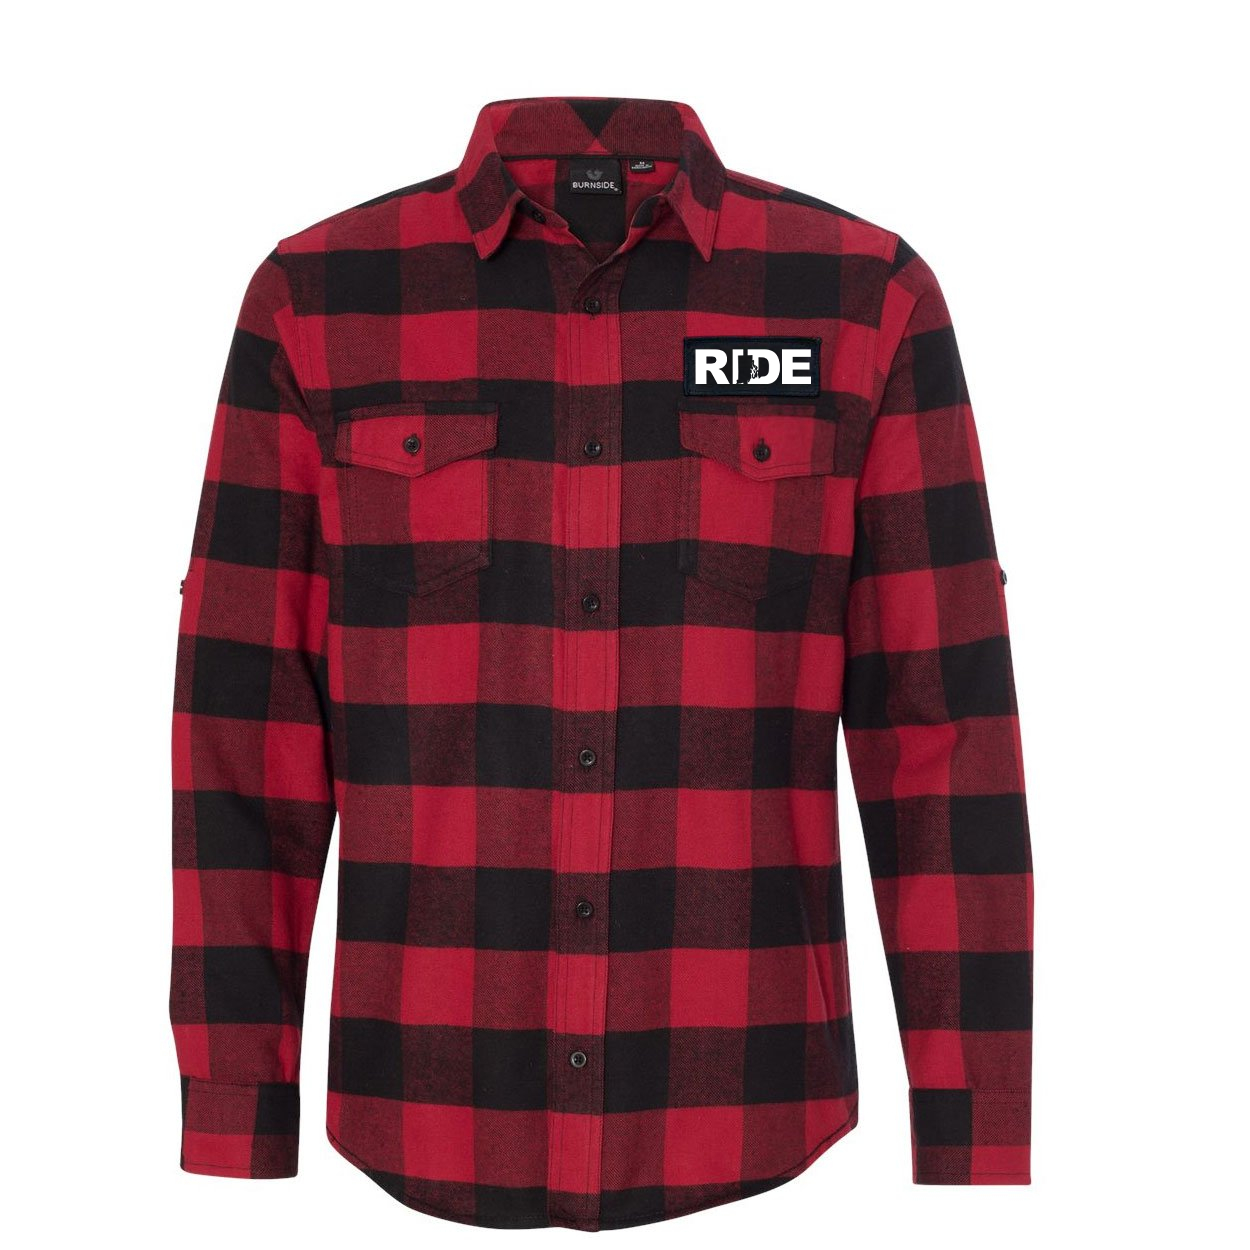 Ride Rhode Island Classic Unisex Long Sleeve Woven Patch Flannel Shirt Red/Black Buffalo (White Logo)